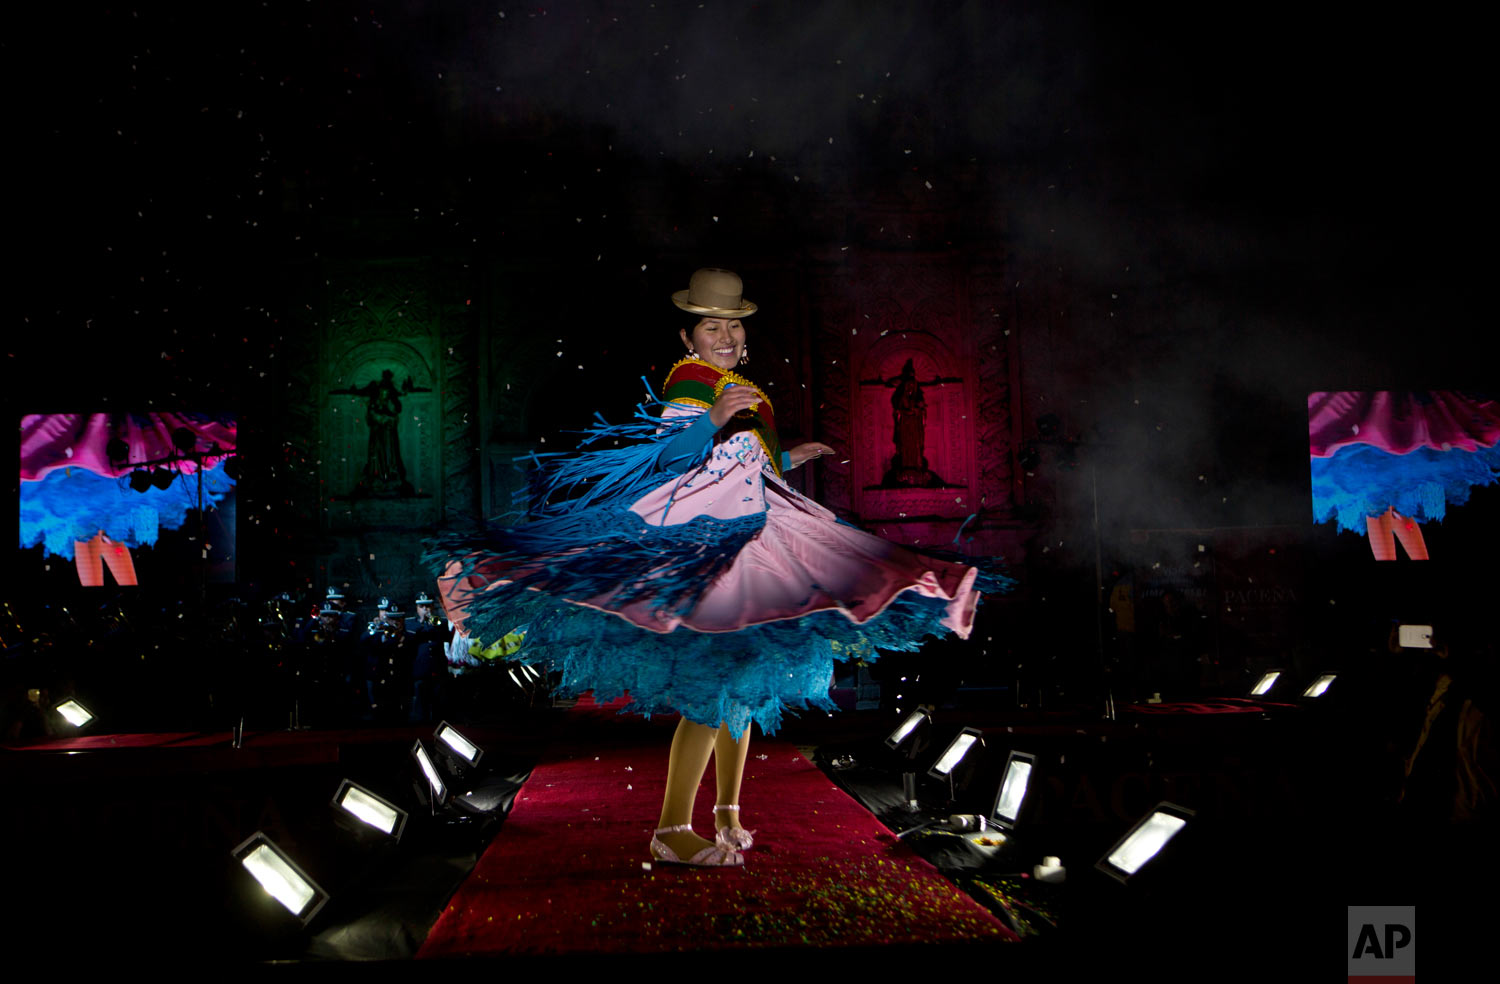 In this June 29, 2018 photo, a woman turns on the catwalk during the Miss Cholita beauty pageant in La Paz, Bolivia. Aymara women participated in the contest that recognizes indigenous women's fashion and beauty as well as their command of indigenous lifestyle and language. (AP Photo/Juan Karita)